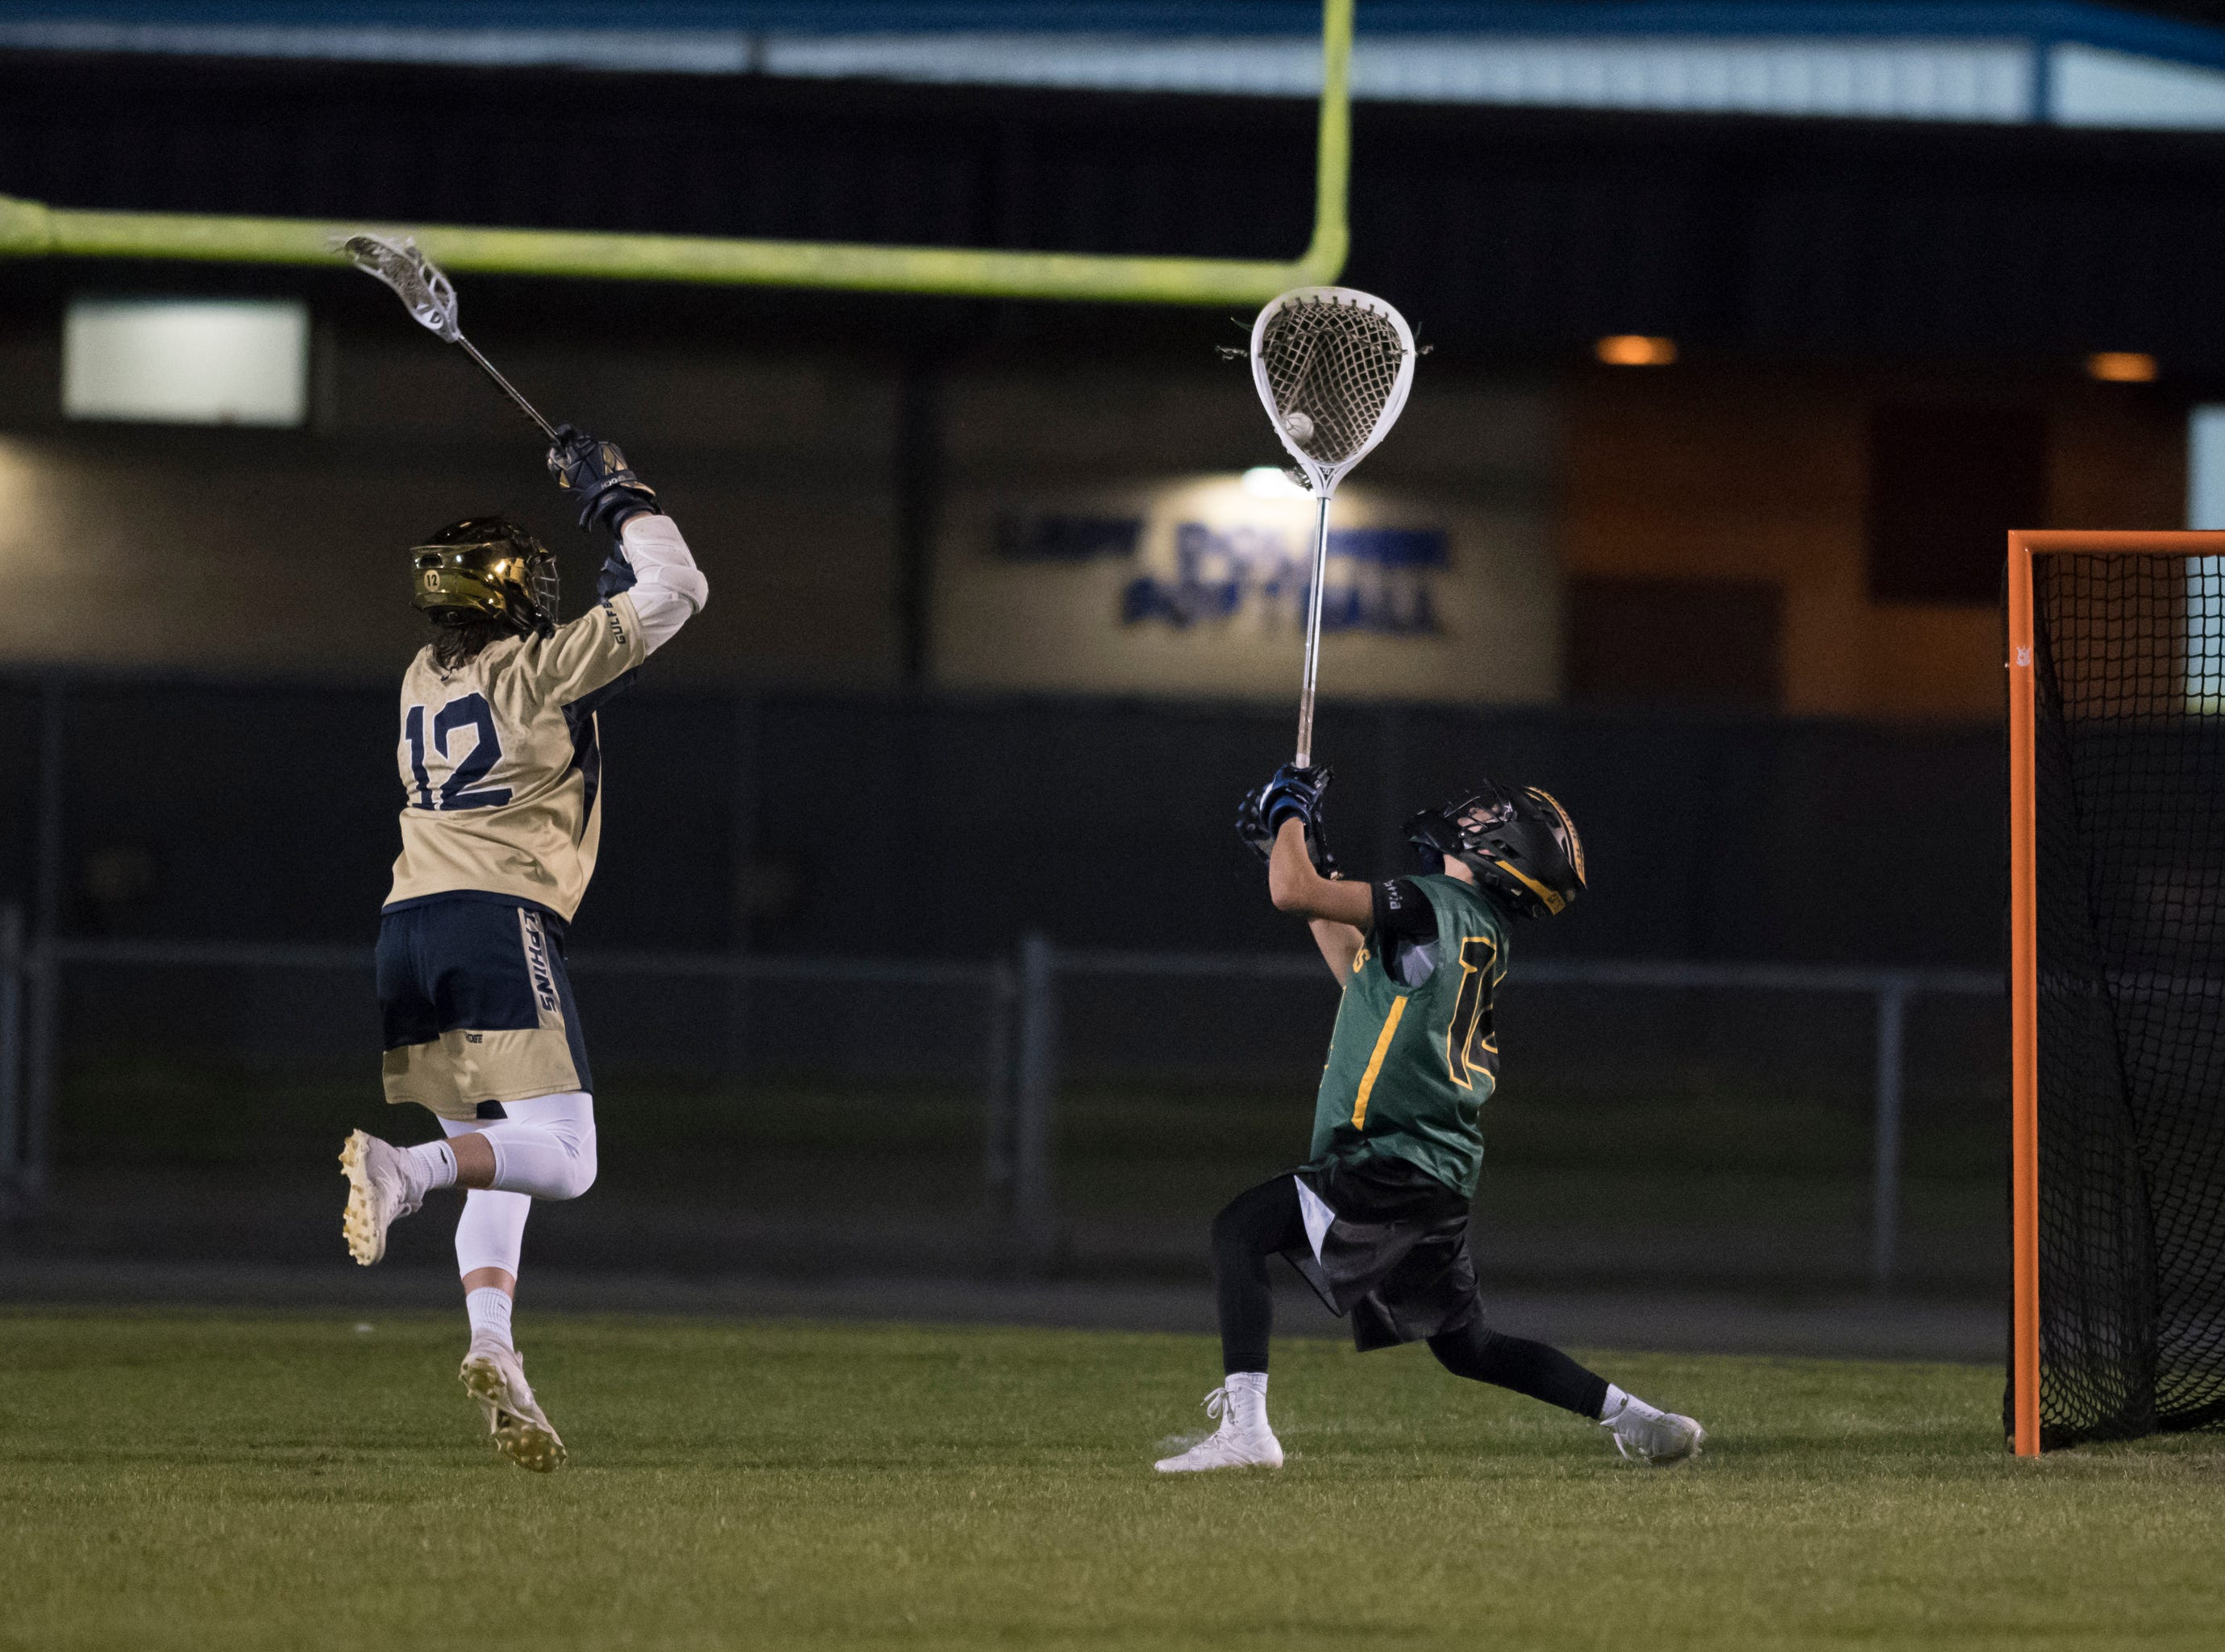 Goalie Phillip Garcia (14) snags Nate Branton (12)'s shot during the Catholic vs. Gulf Breeze boys lacrosse game at Gulf Breeze High School on Wednesday, March 6, 2019.